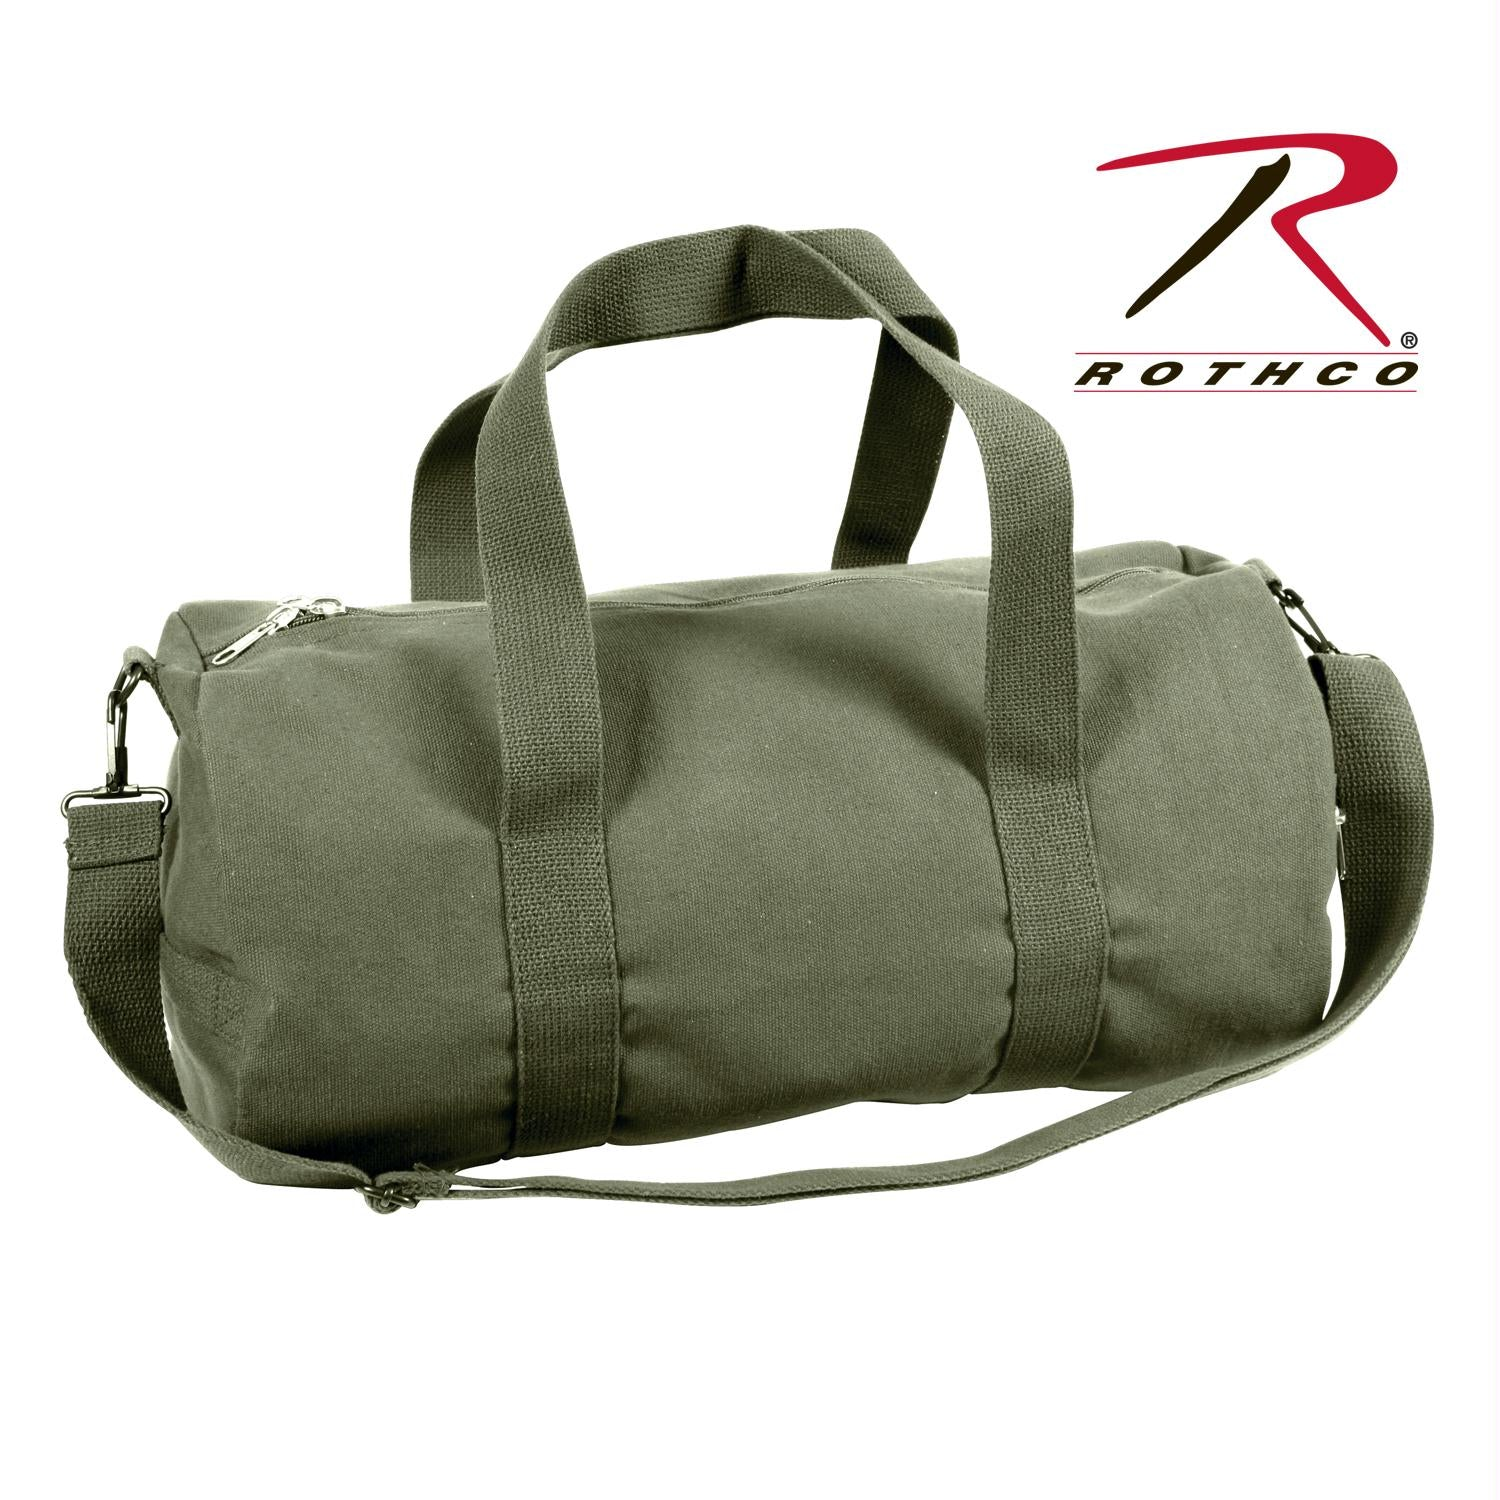 Rothco Canvas Shoulder Duffle Bag - 19 Inch - Olive Drab